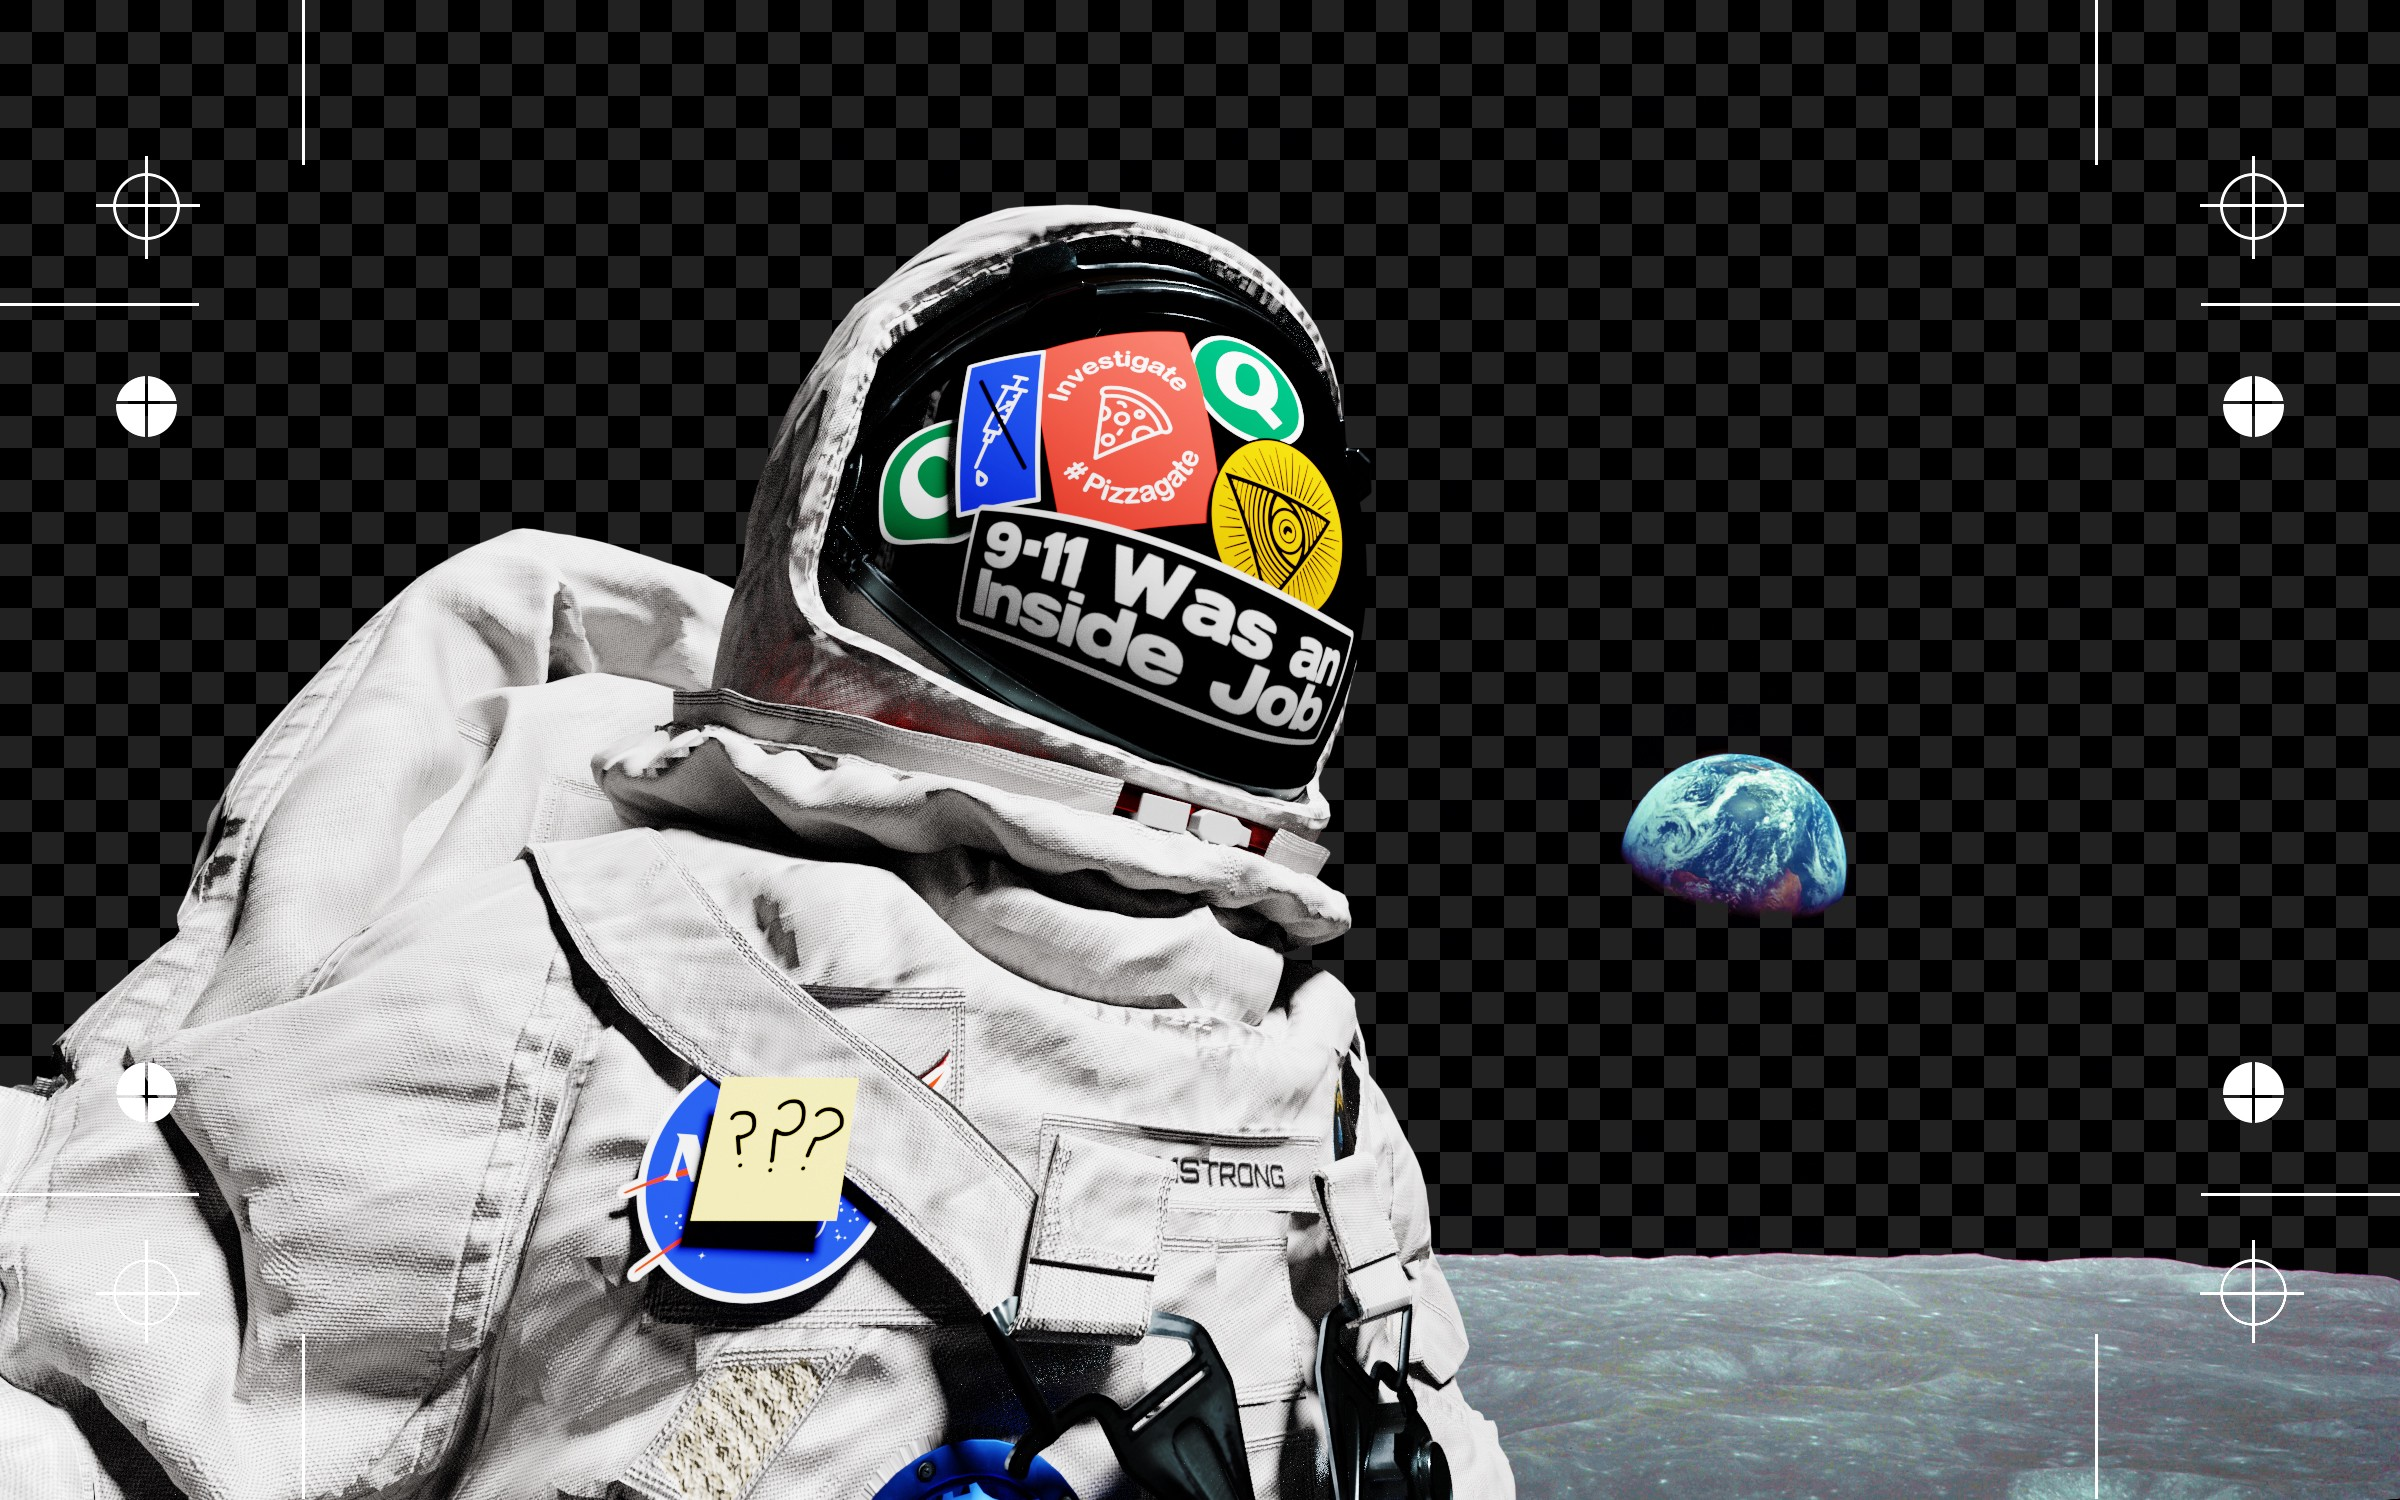 The Moon Landing Hoax Theory Started as a Joke